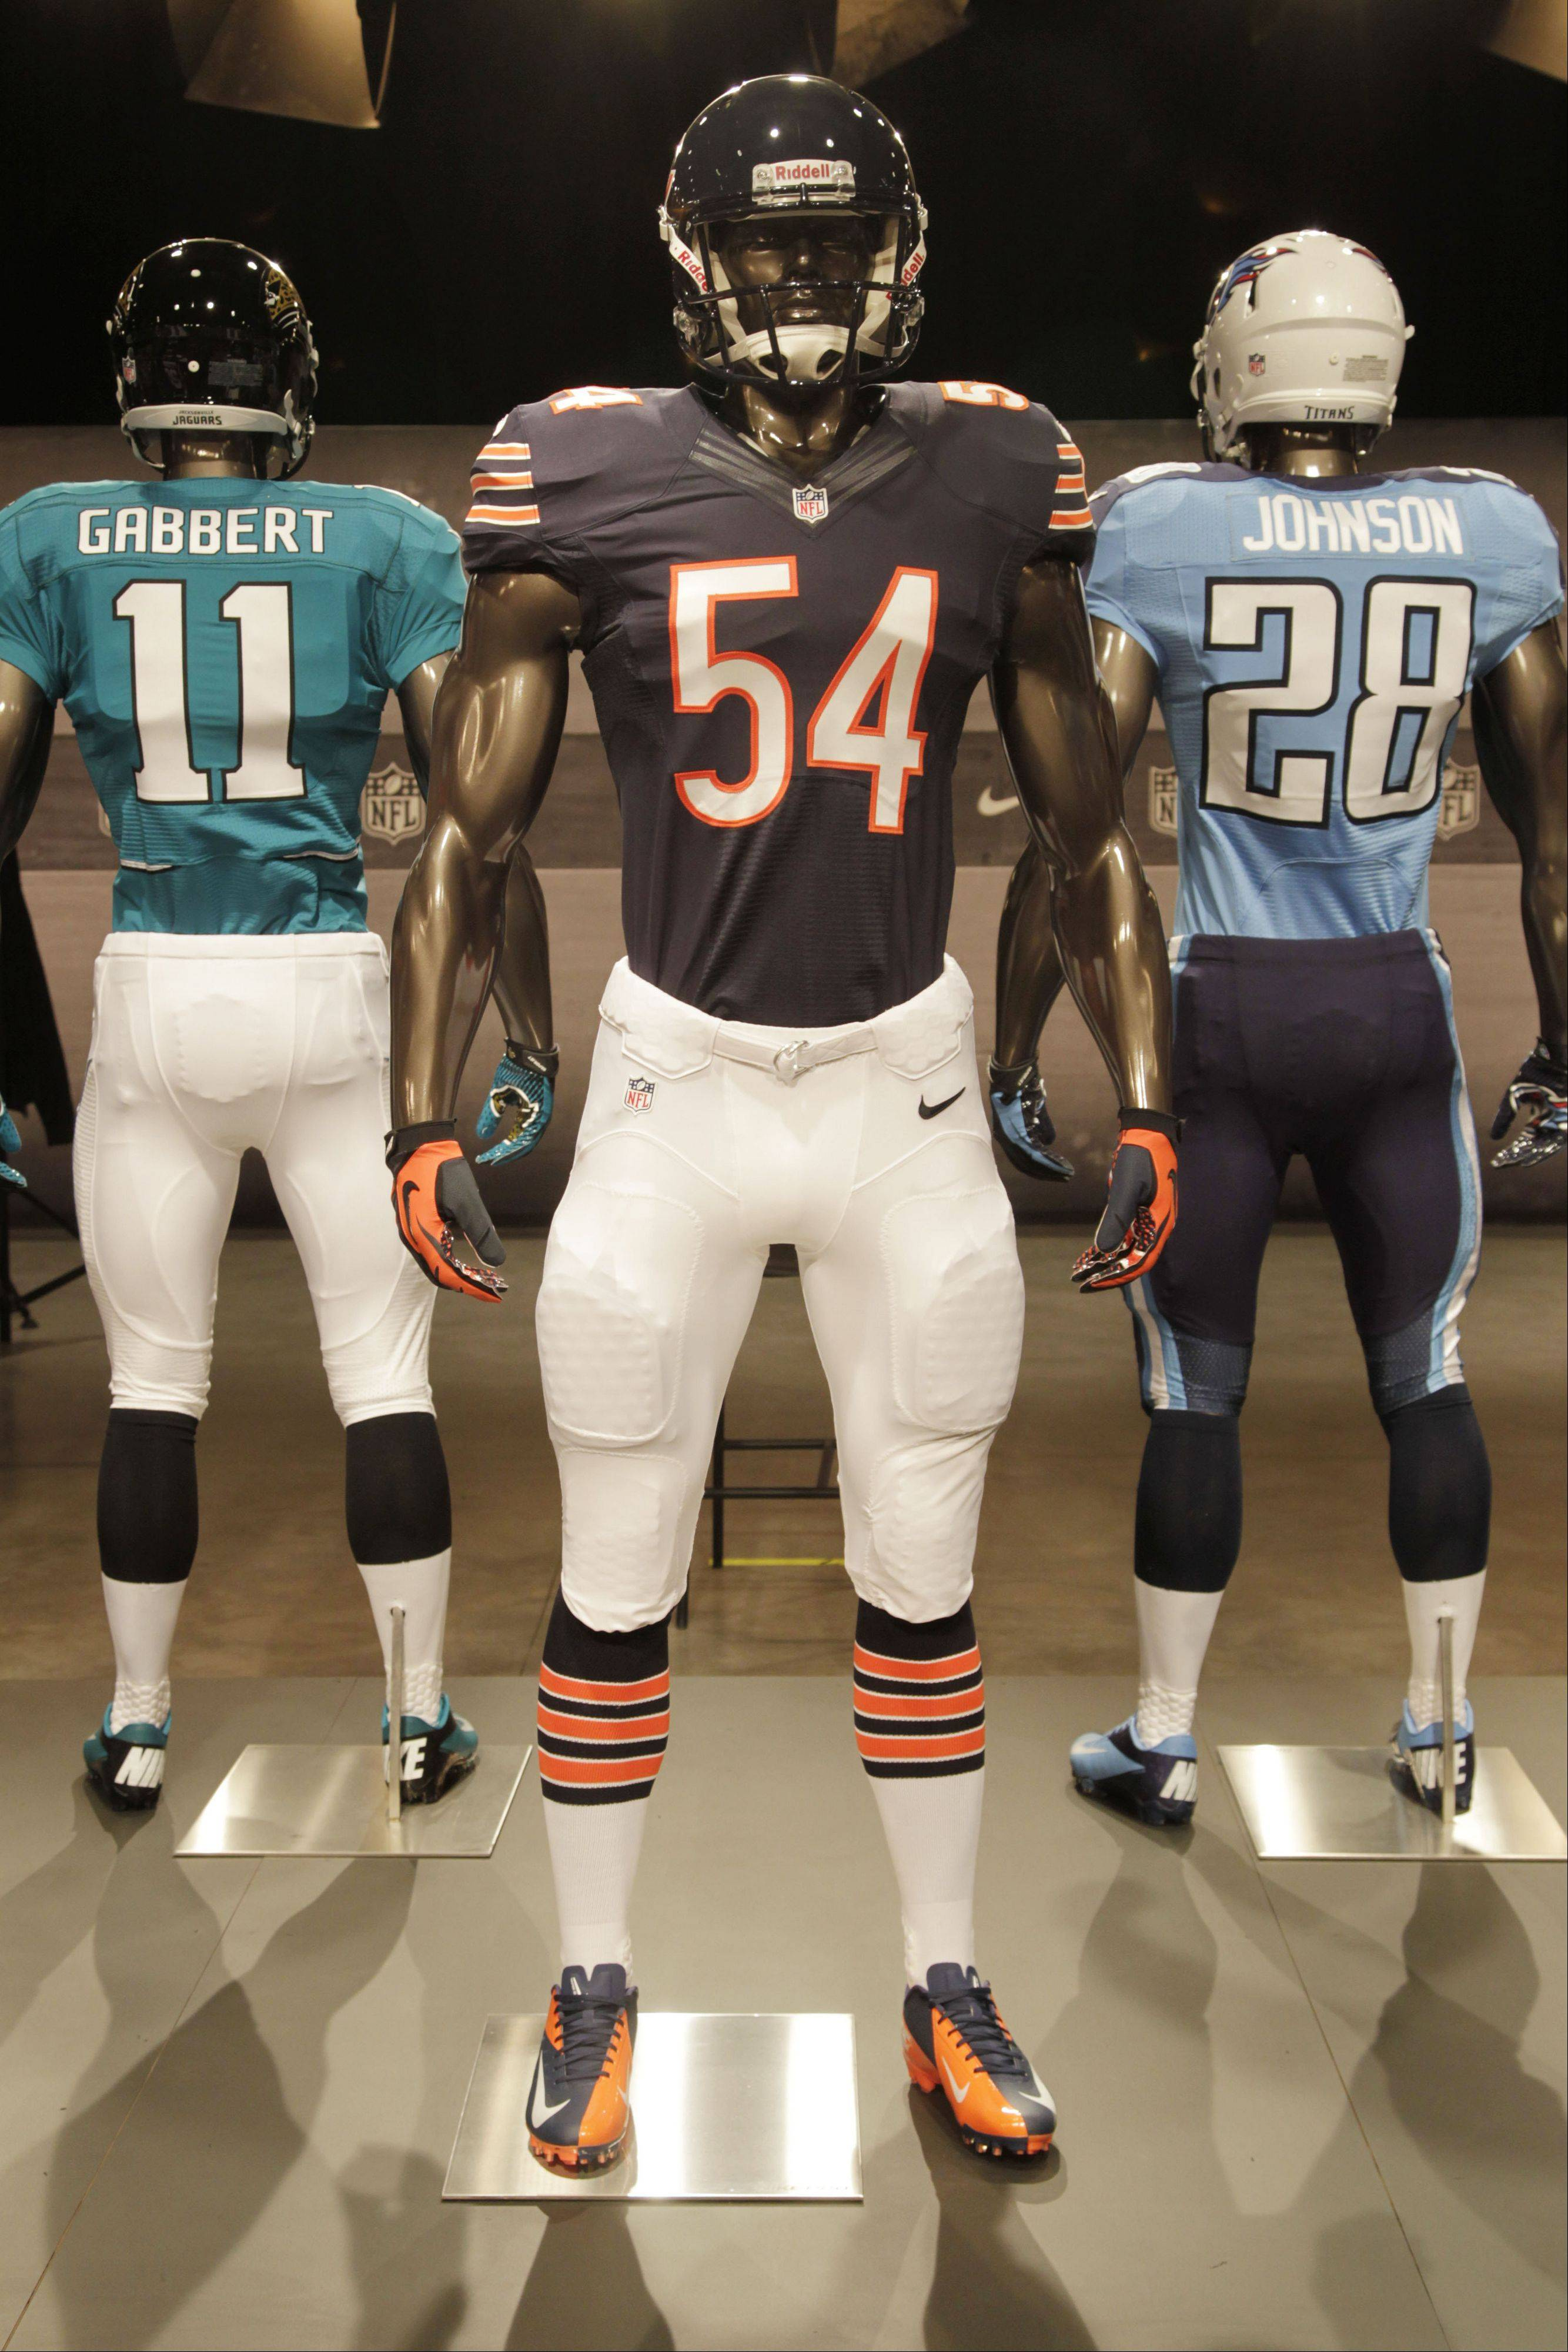 The new Chicago Bears uniform is displayed on a mannequin in New York, Tuesday, April 3, 2012. NFL has unveiled its new sleek uniforms designed by Nike. While most of the new uniforms are not very different visually, they all are made with new technology that make them lighter, dryer and more comfortable.